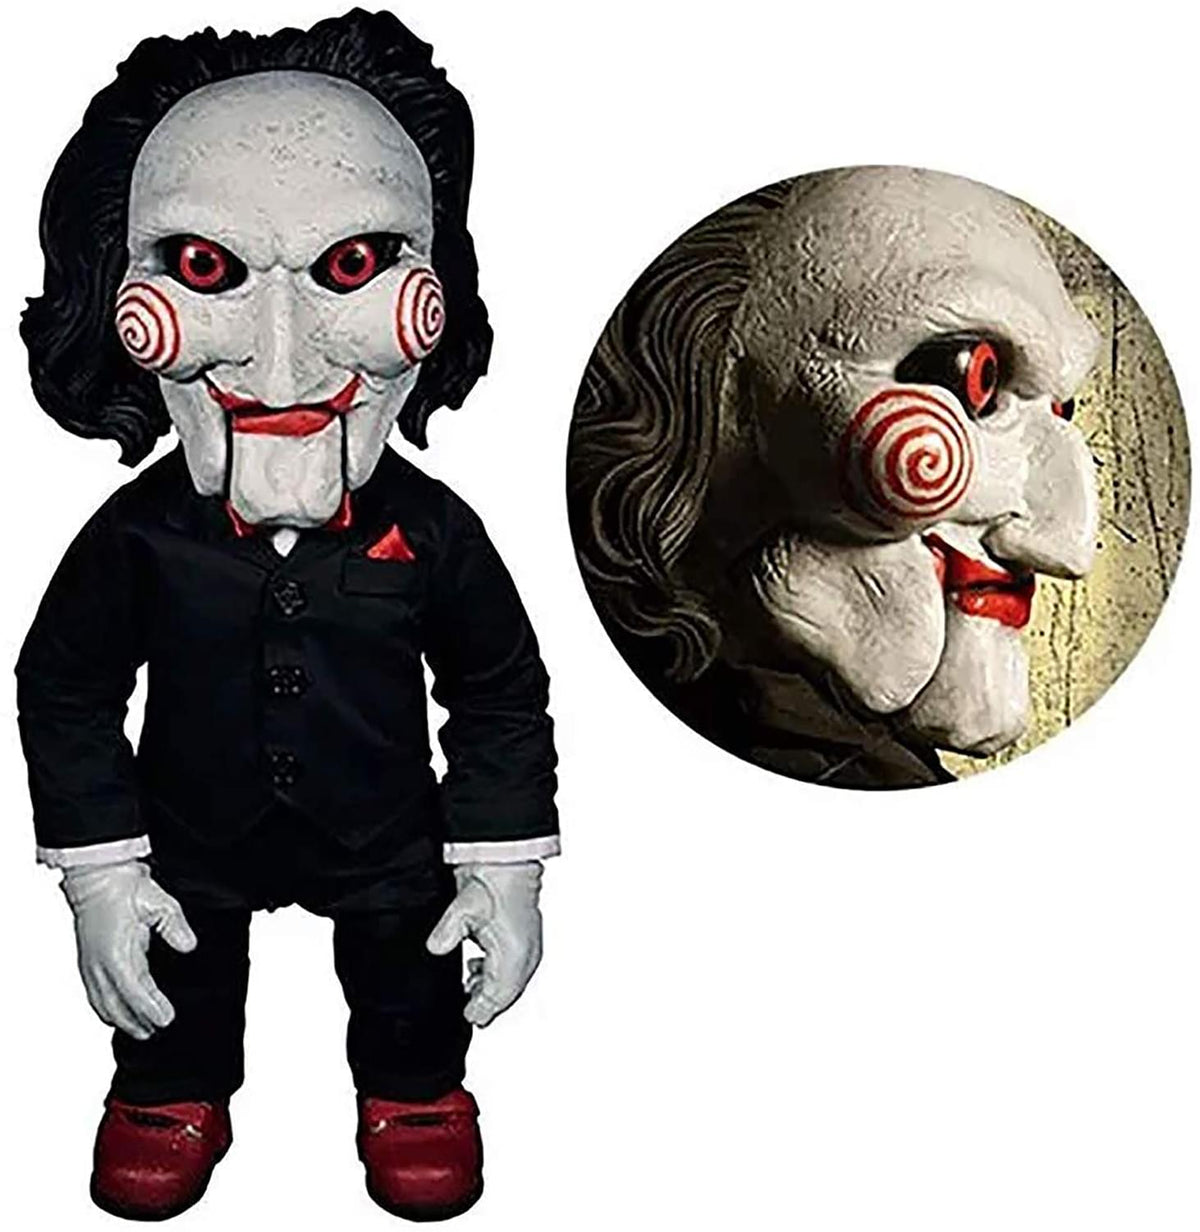 Saw Billy Pupper 15 Inch Mega Scale Talking Figure